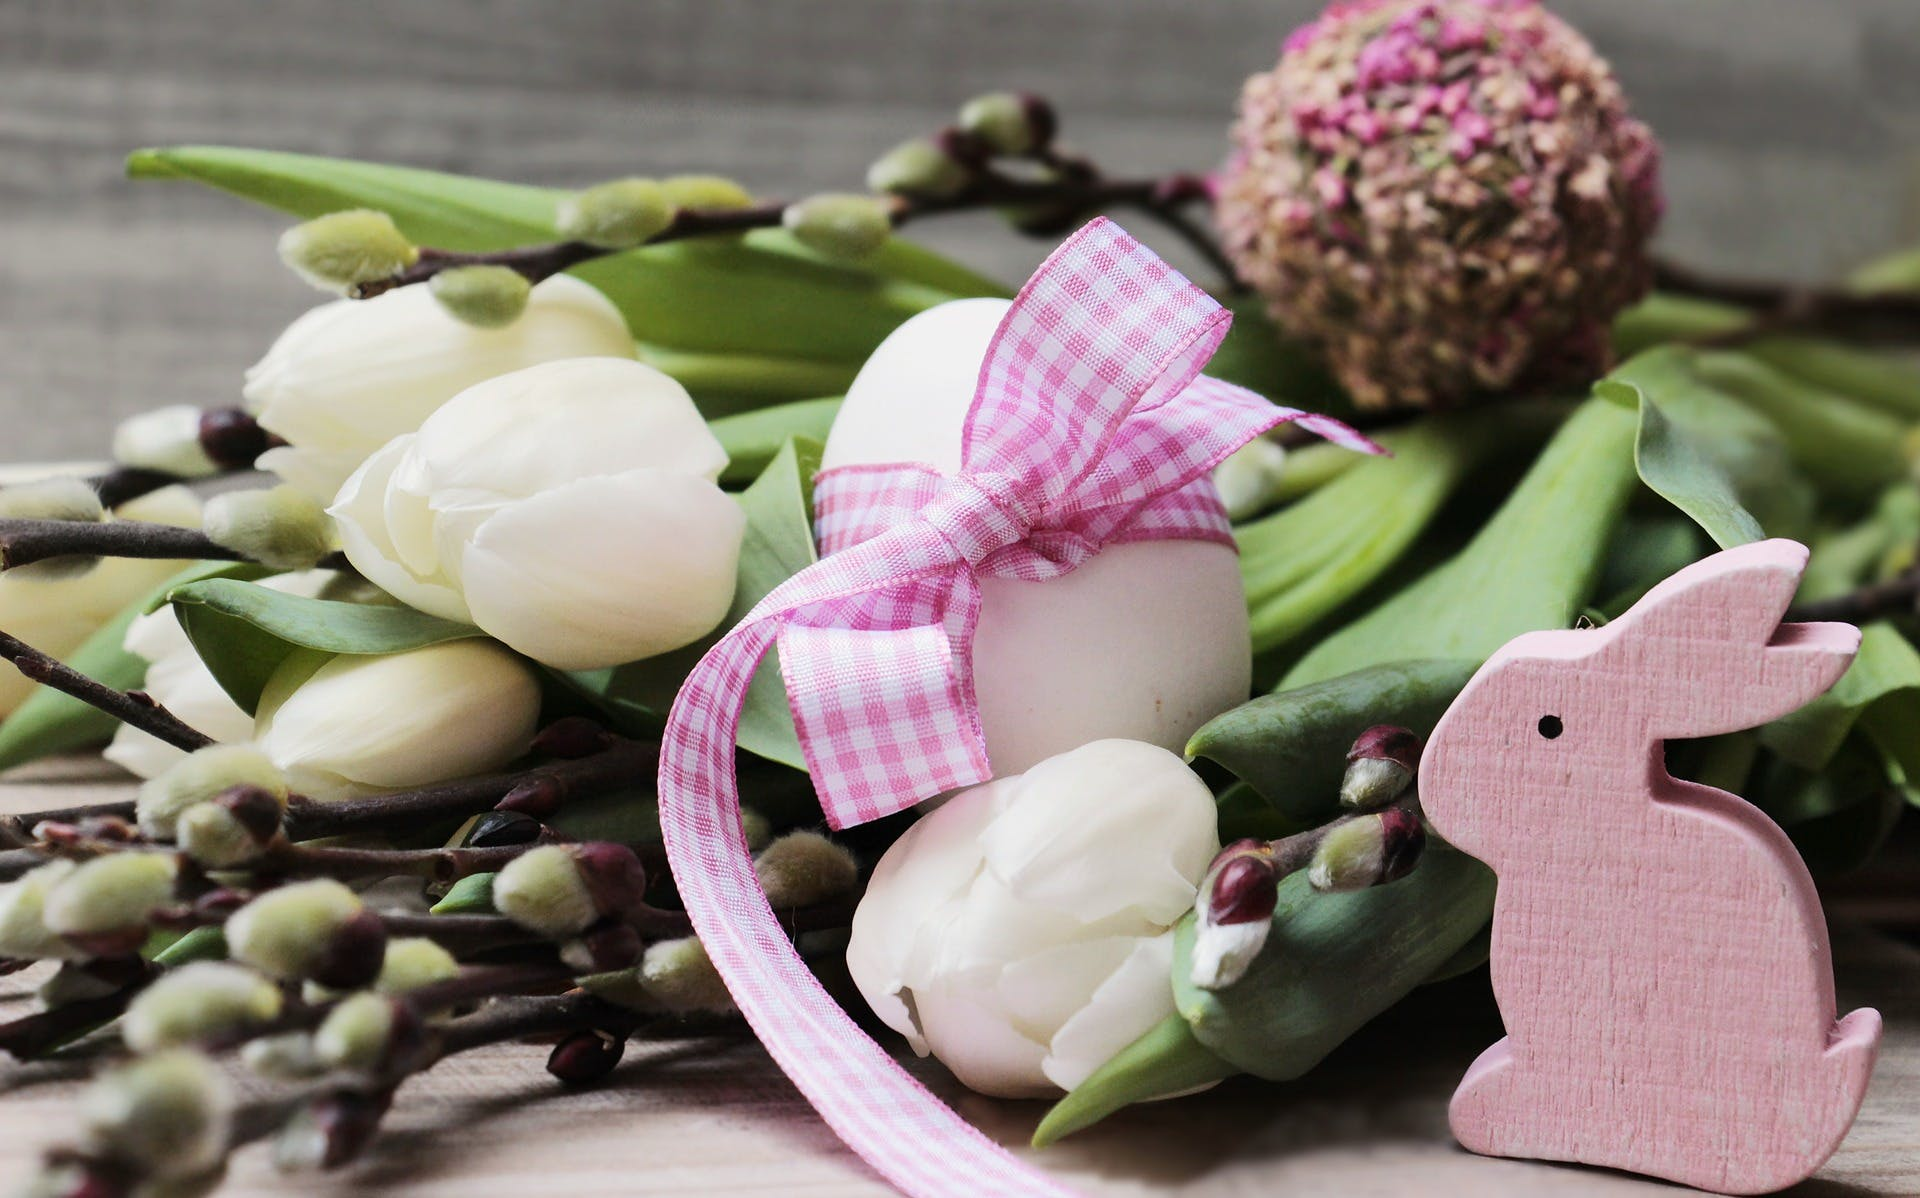 Assortment of Easter trinkets on a plate